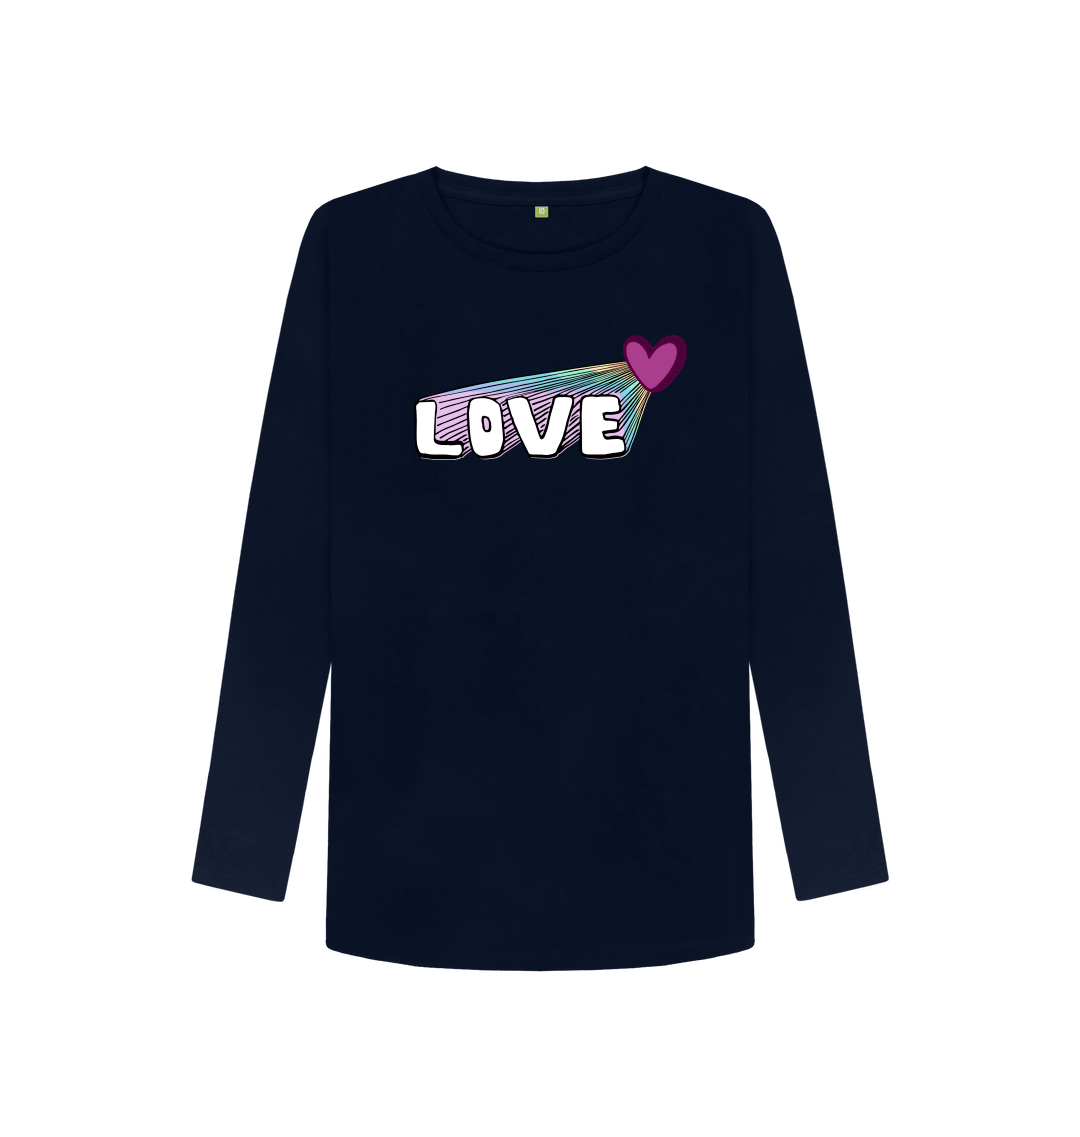 Organic Cotton Women's Let Your Love Shine Longsleeve Top in Navy